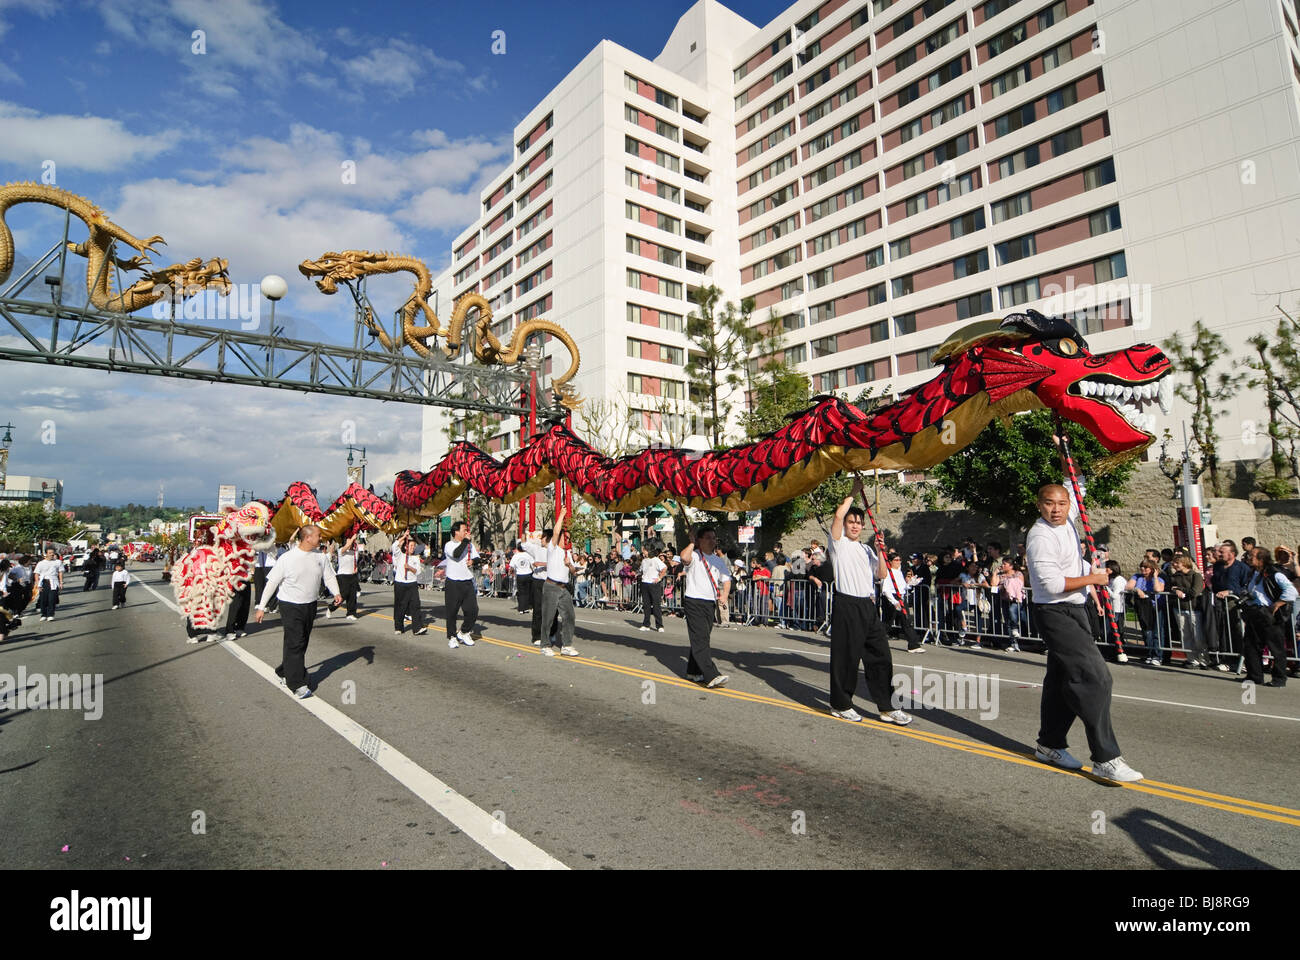 Chinese New Year parade in Chinatown of Los Angeles, California. Featuring Dragons and Lion Dancers. - Stock Image